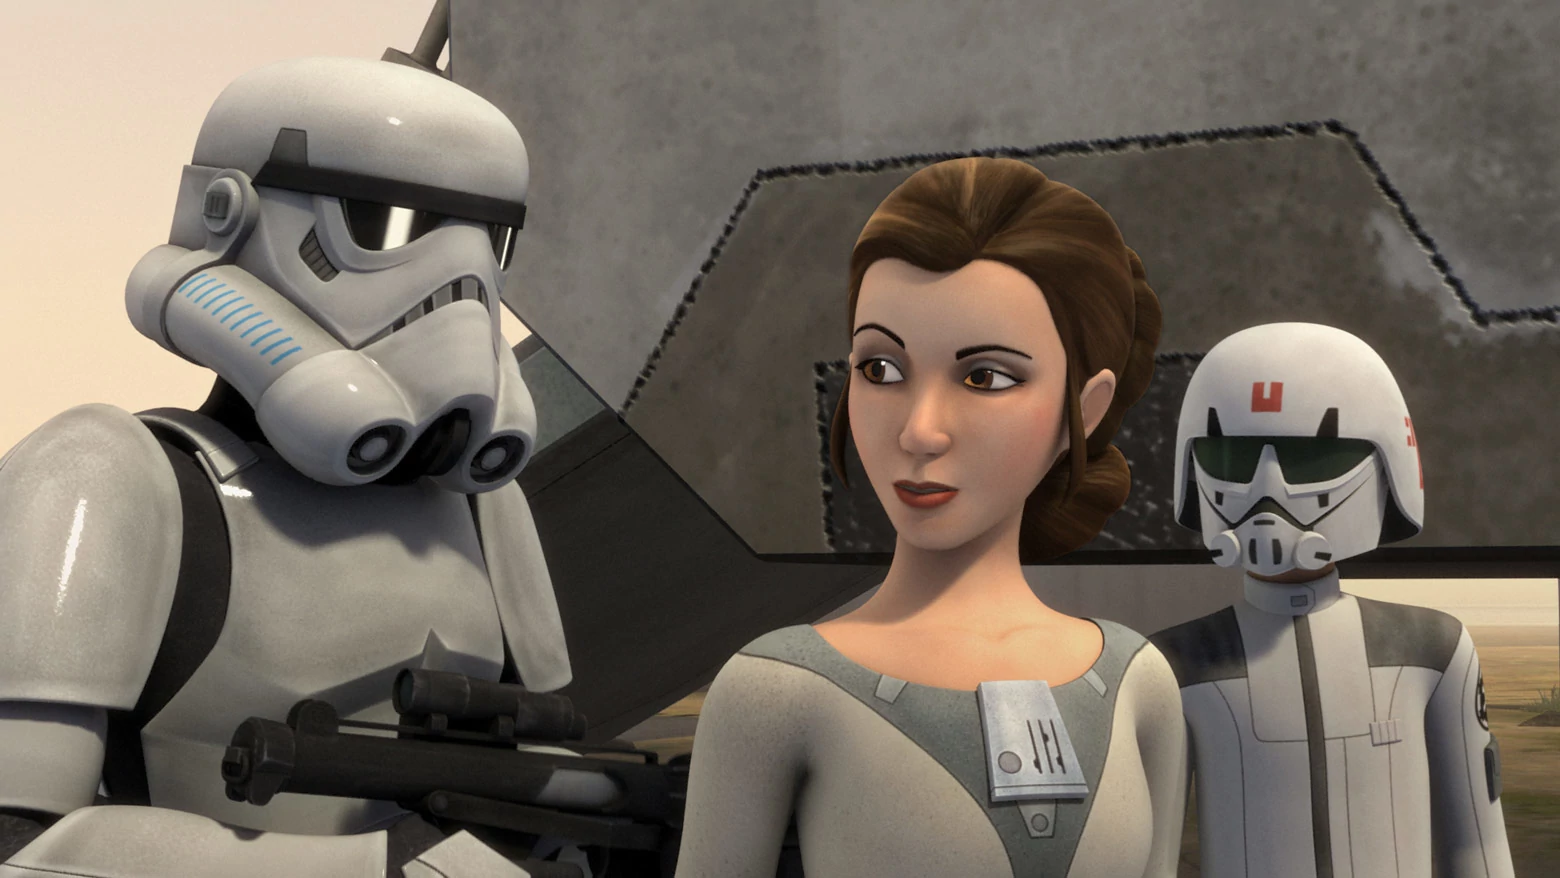 Listen To Five Voice Actresses Talk About The Challenge Of Playing Princess Leia